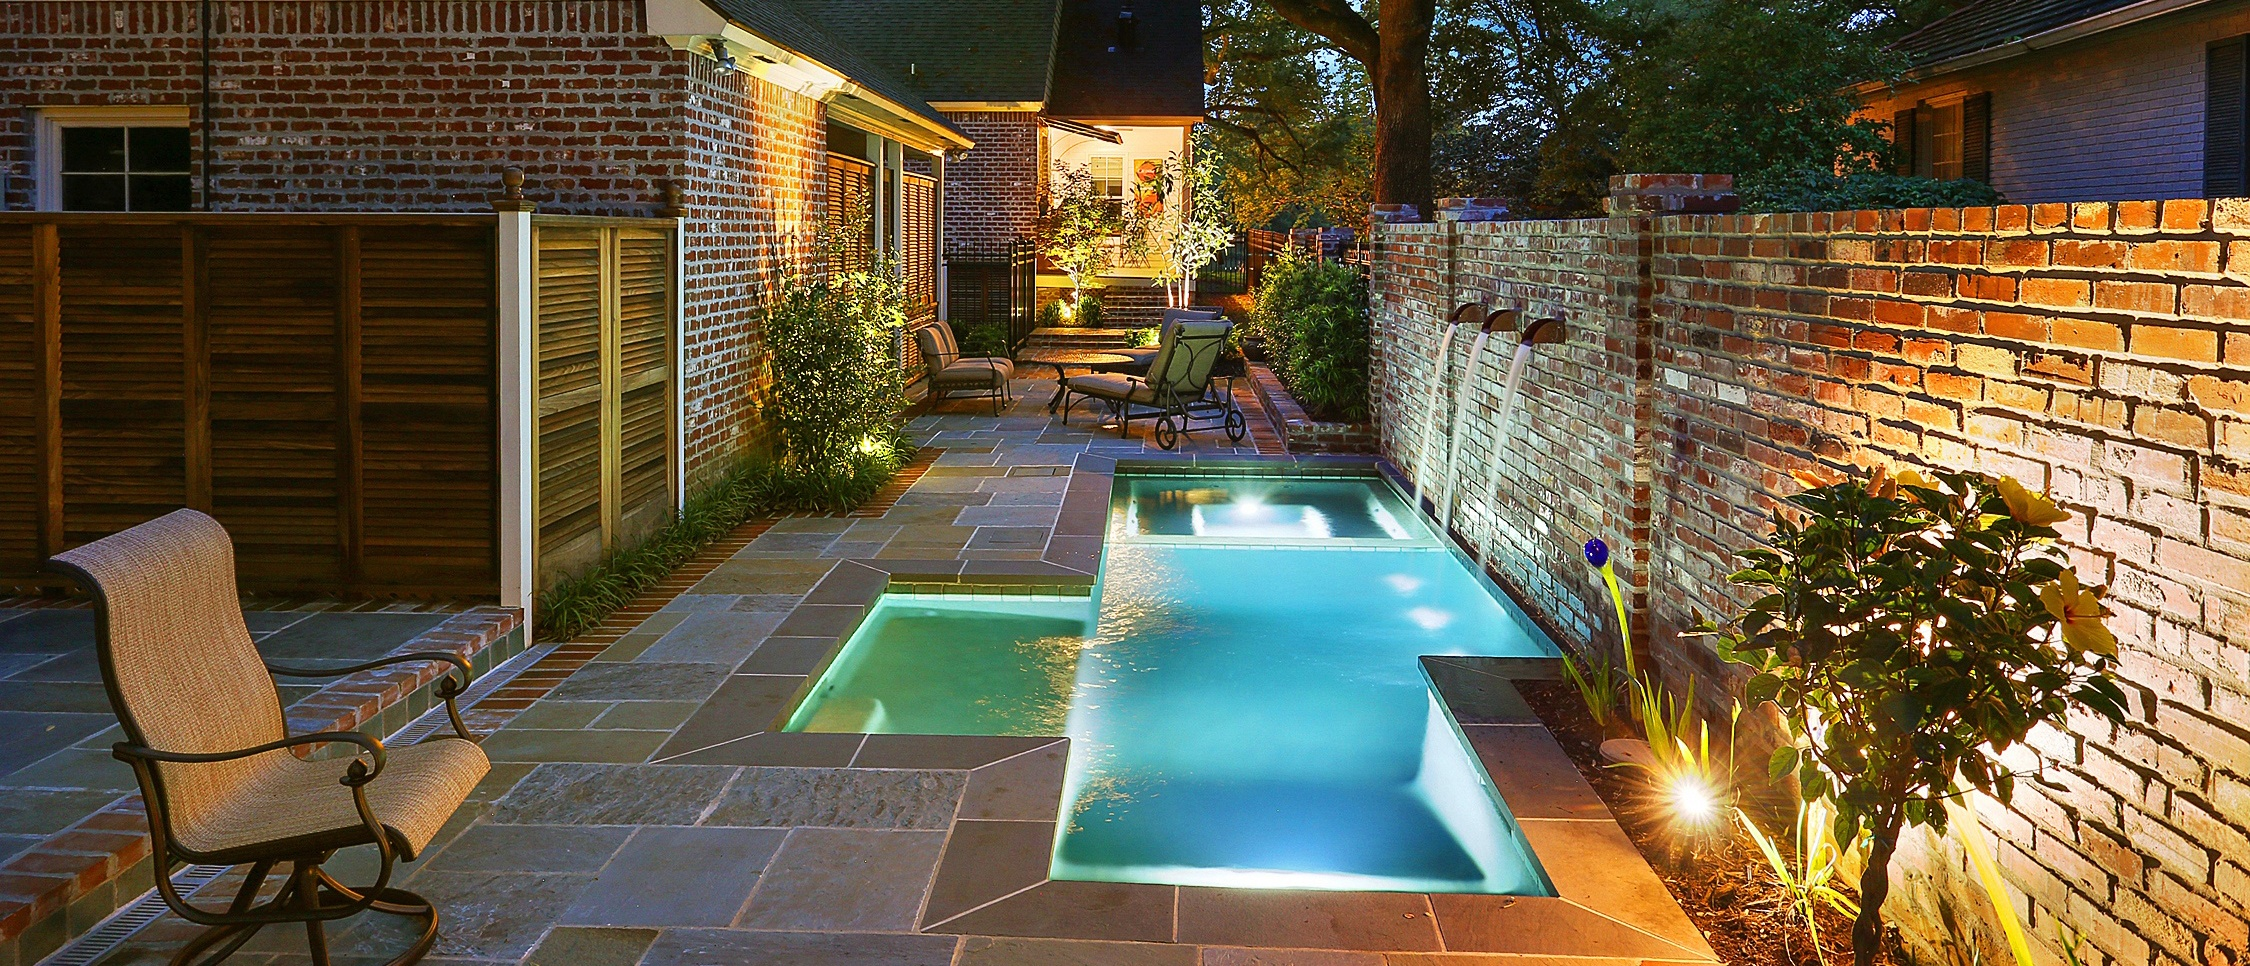 Lucas Firmin Pools Featured in HGTV